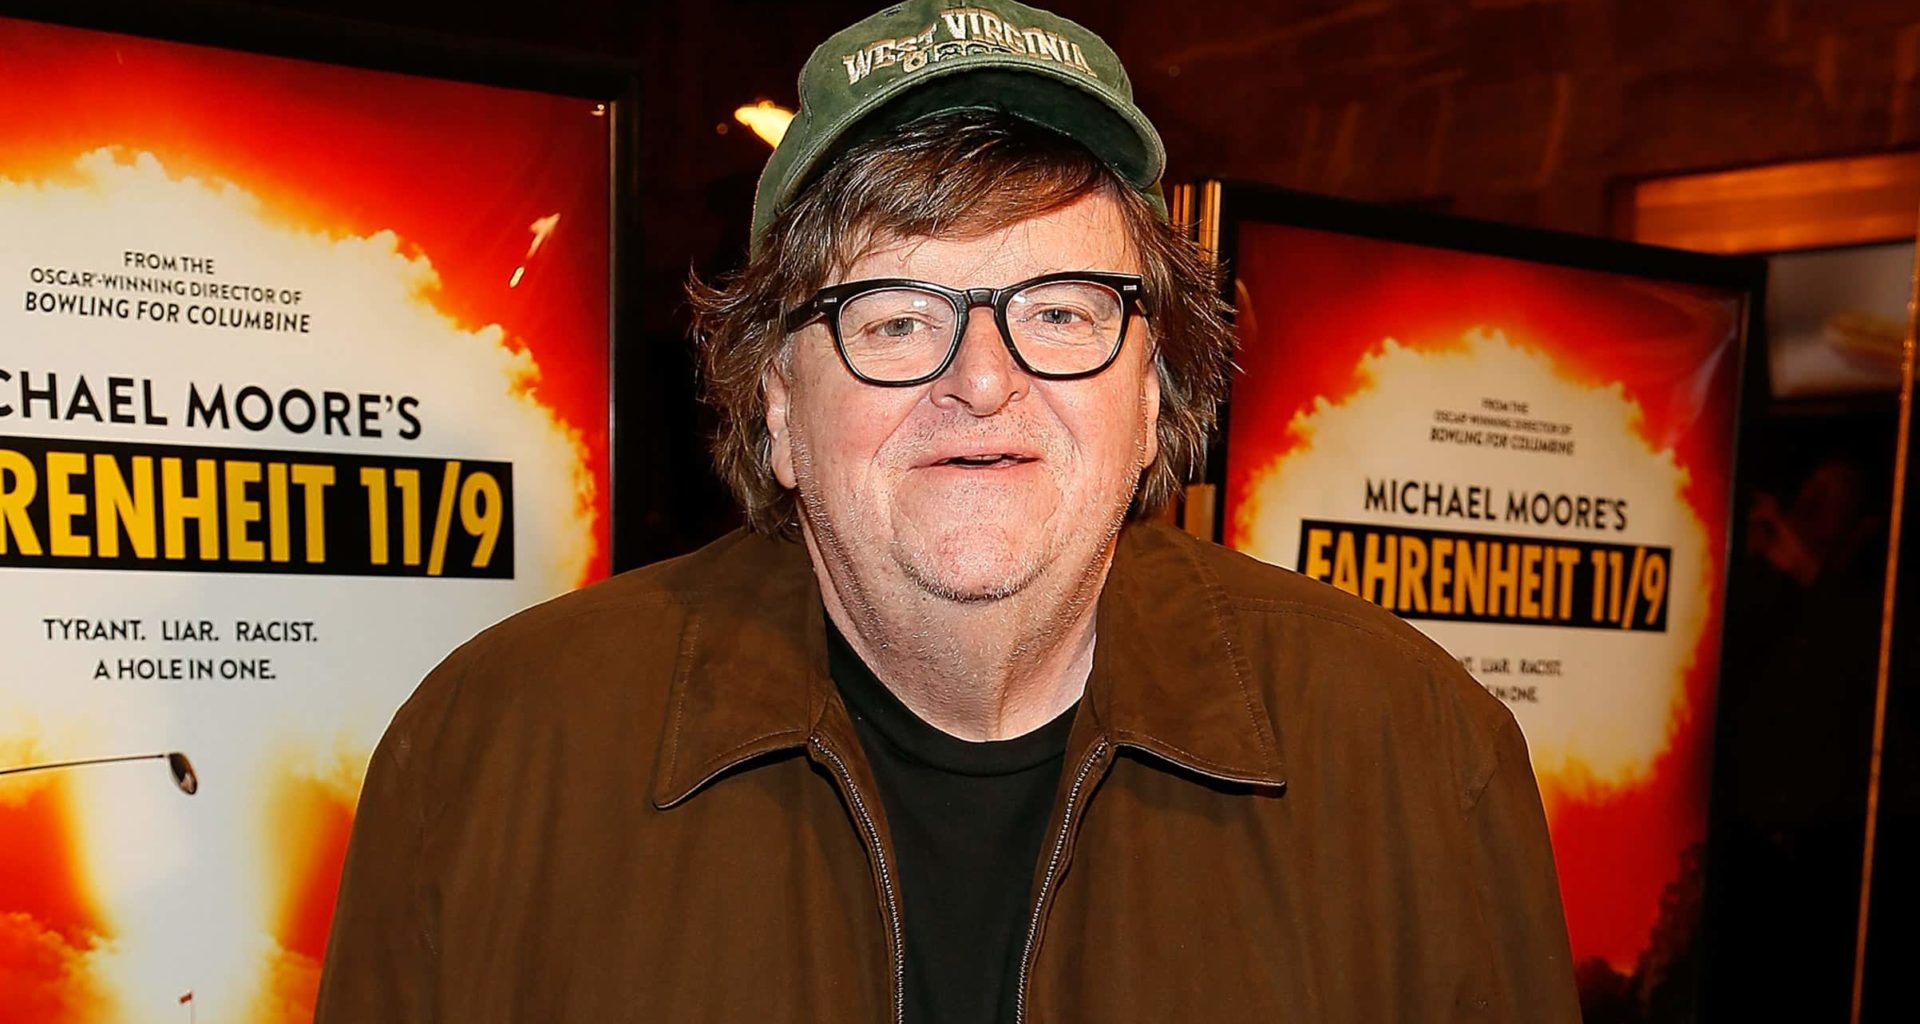 Michael Moore Endorses Bernie Sanders Don't Vote By Fear, Vote for Who You Believe In